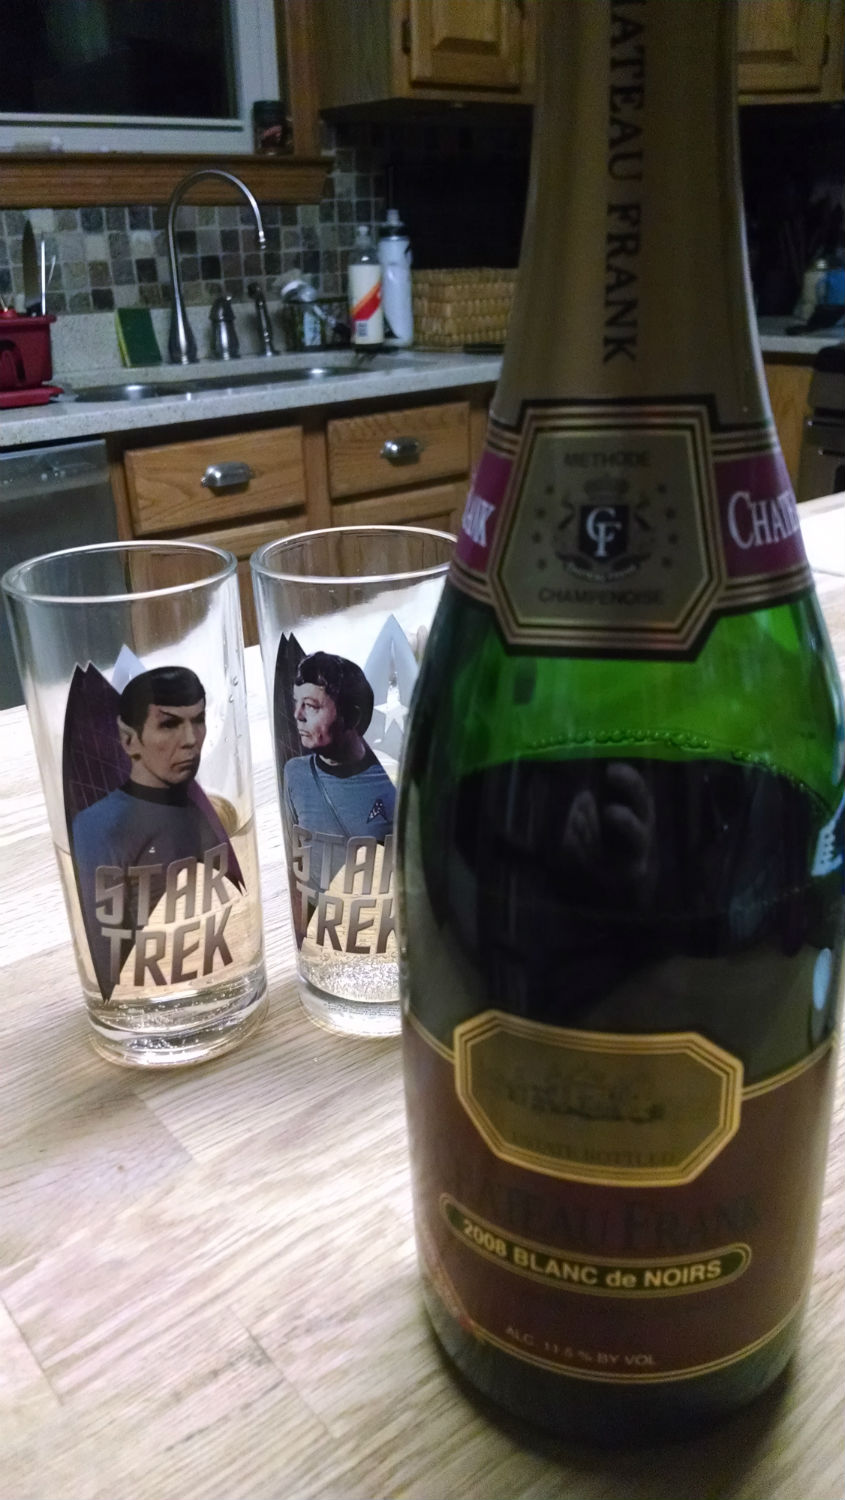 champagne and star trek